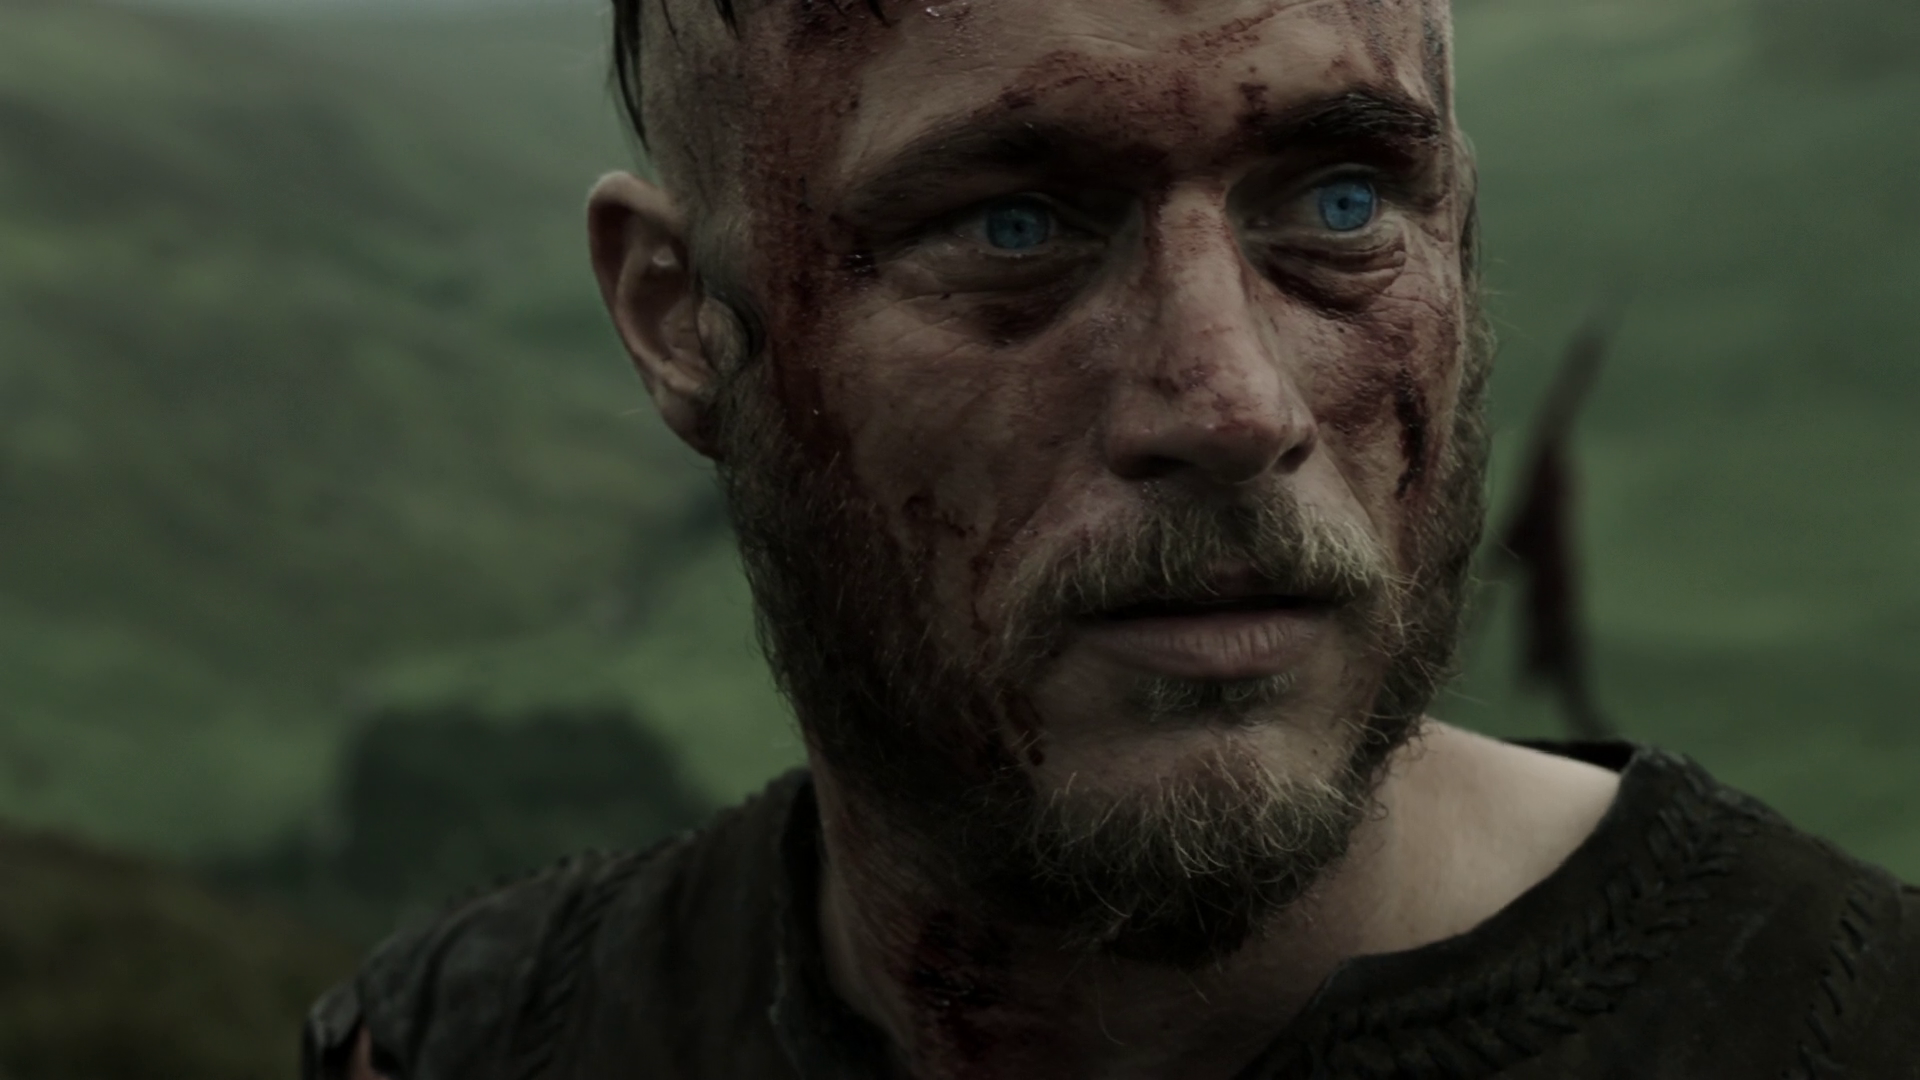 http://whitedevilblog.files.wordpress.com/2013/11/ragnar ...